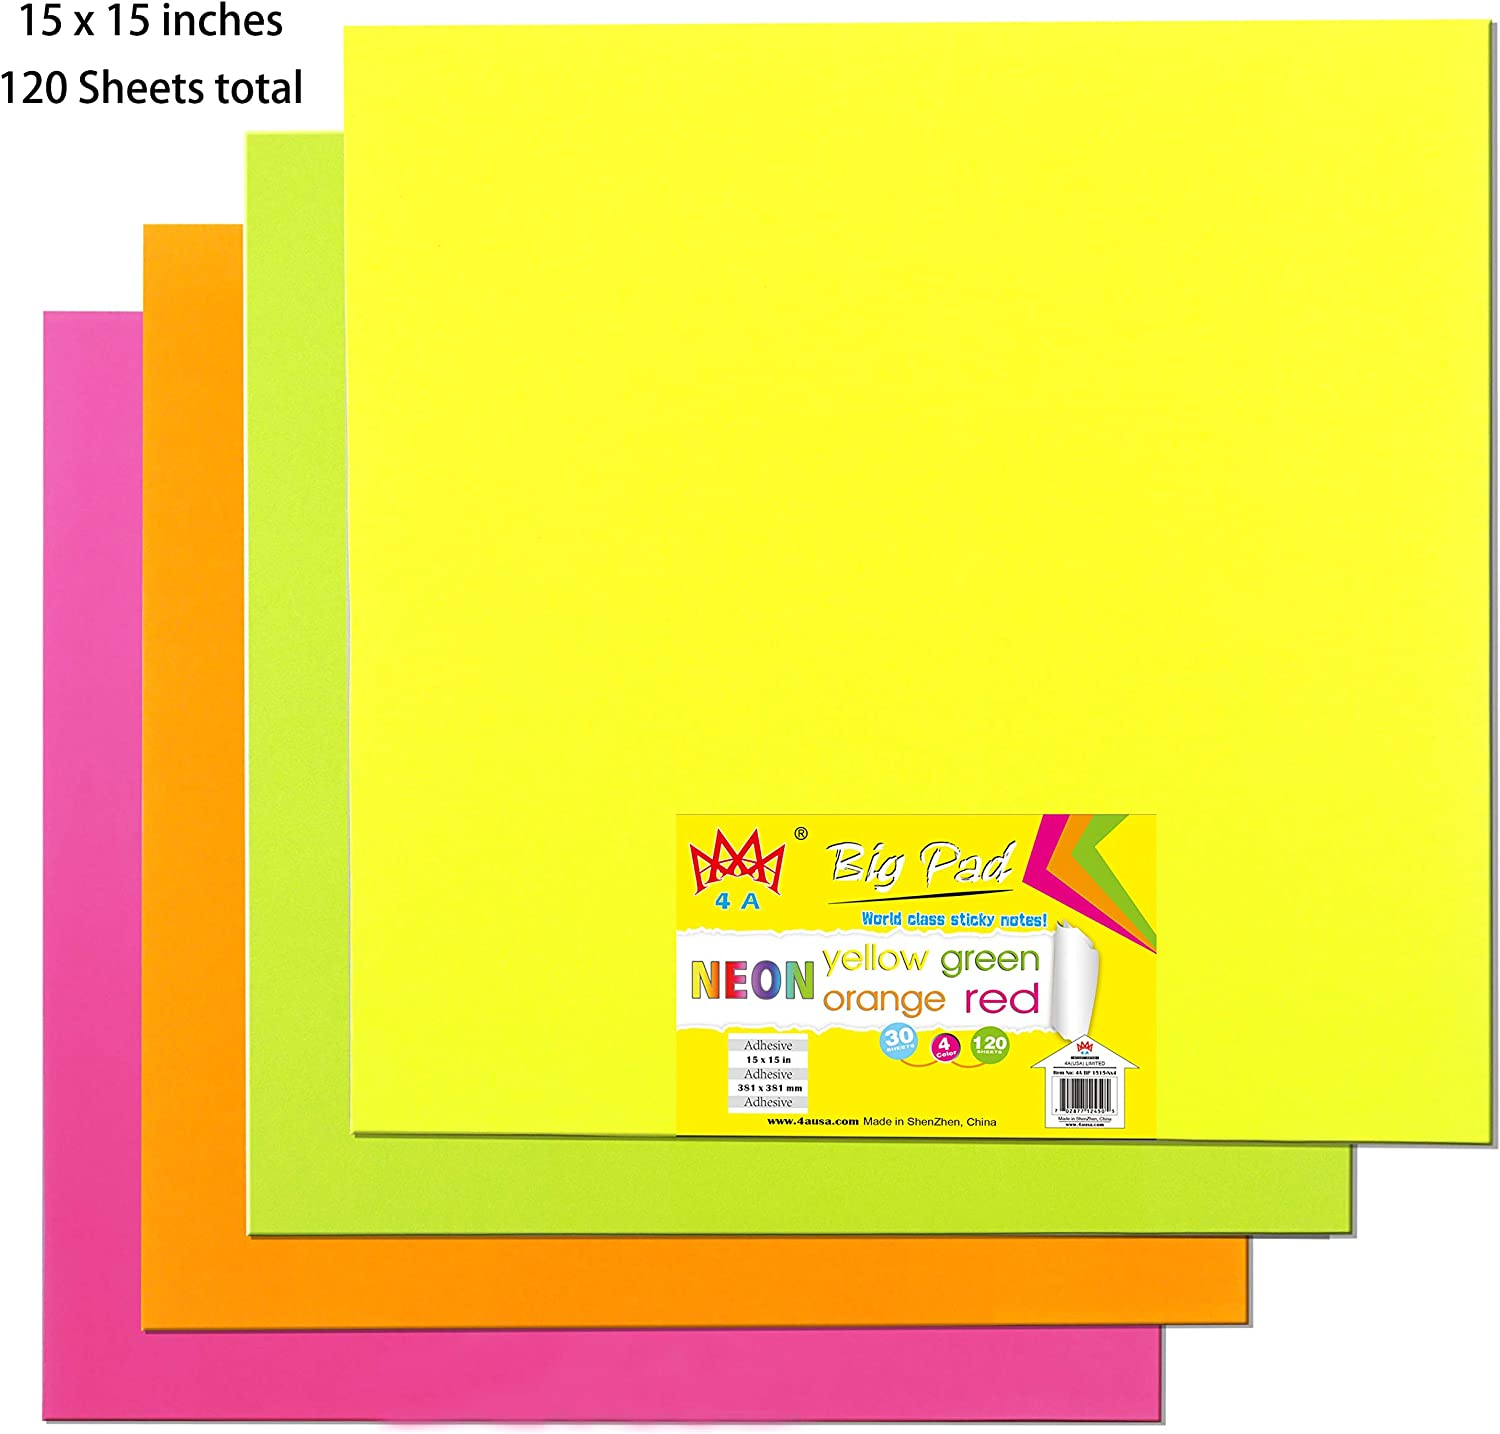 4A Sticky Big Pad,11 x 11 in,Large Size,Neon Yellow,Orange,Red and Green,Self-Stick Notes,30 Sheets//Pad,4 Pad//Pack,4A BP 1111-Nx4